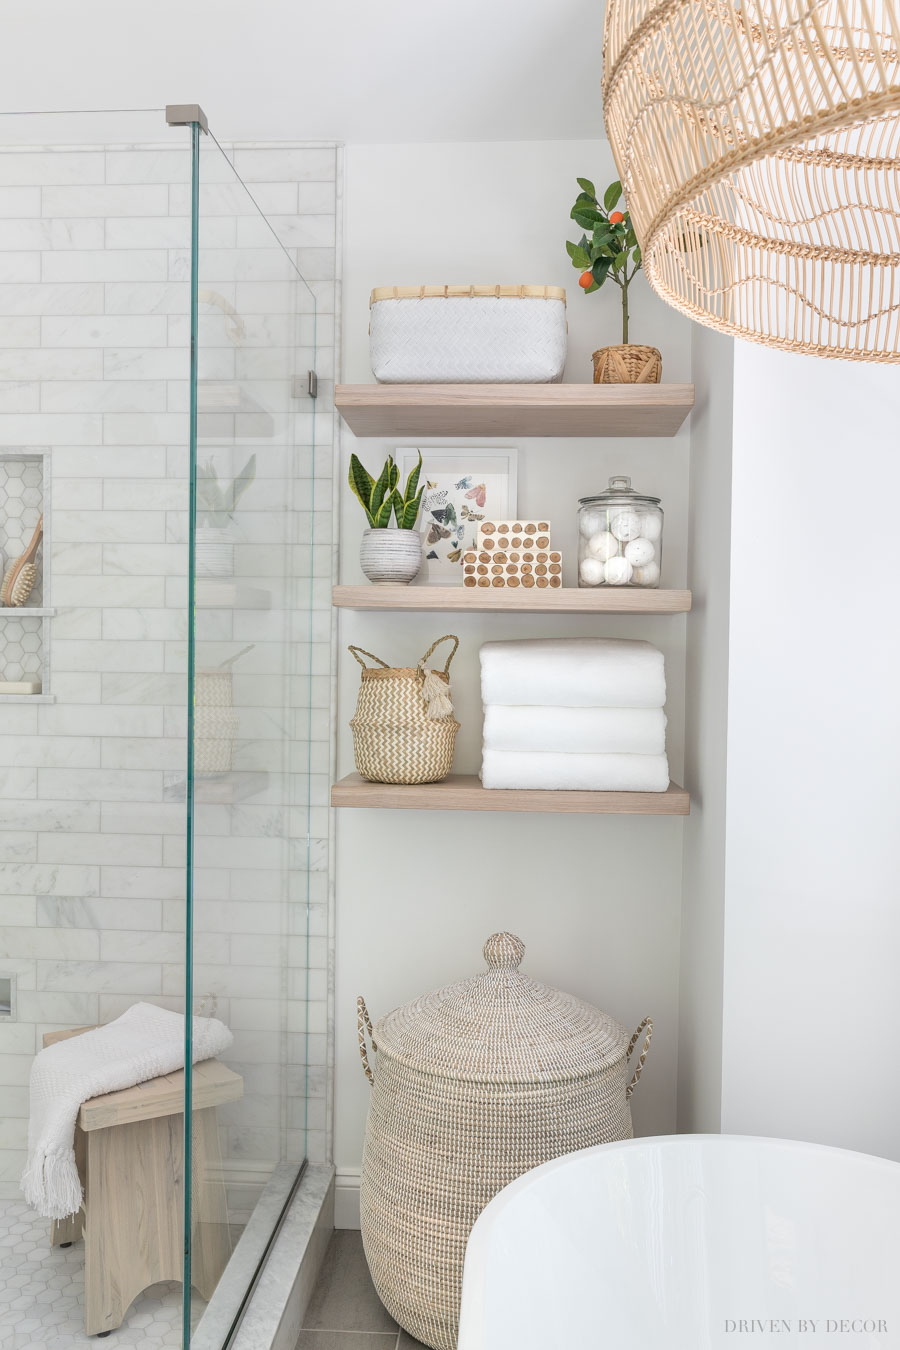 Love this large lidded basket she uses as a hamper in her master bathroom!